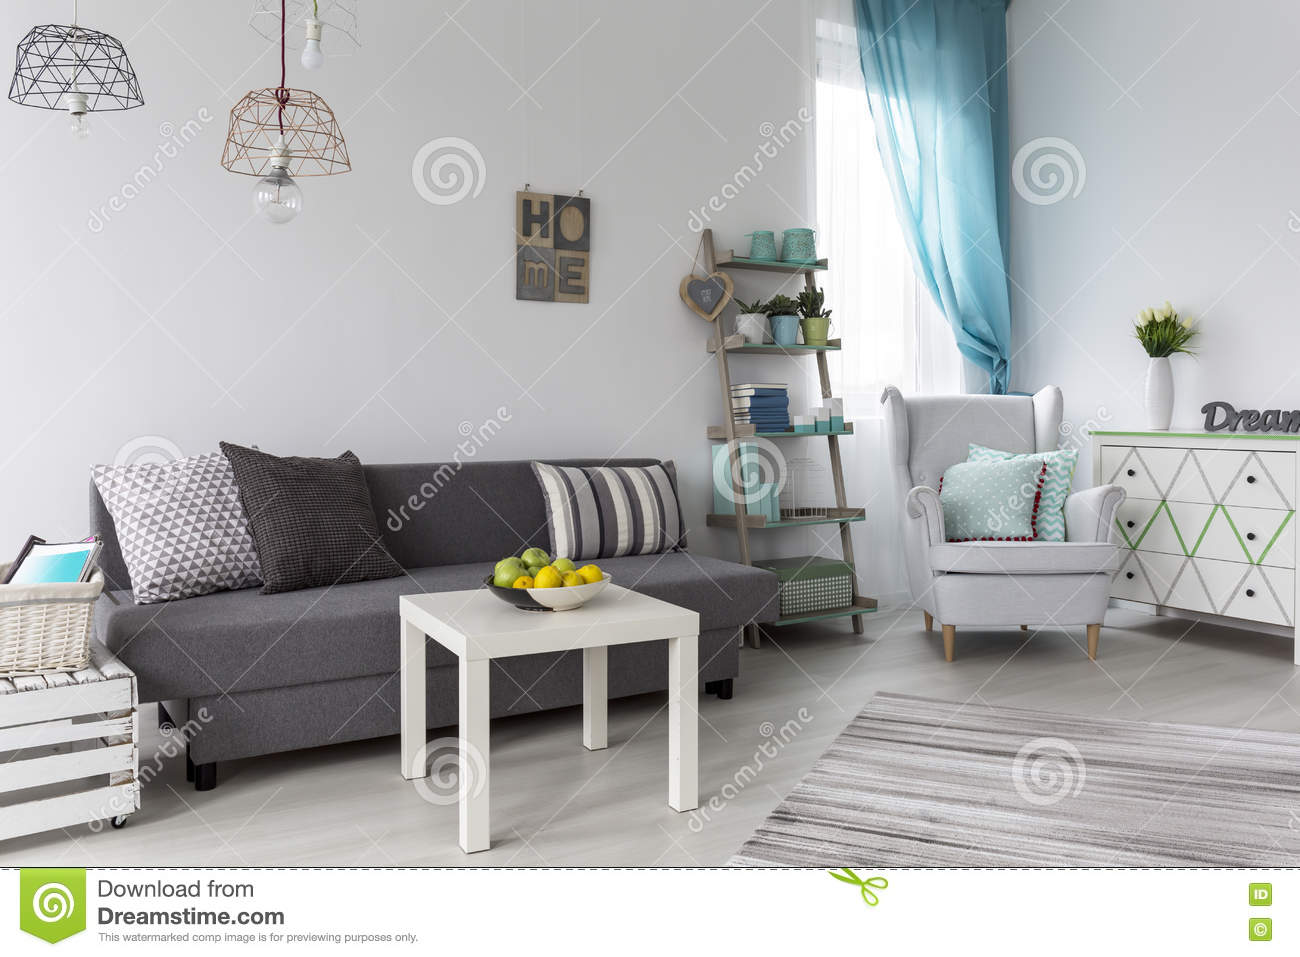 Download Pastel Living Room Interior Stock Photo   Image Of Bright, Modern:  79379338